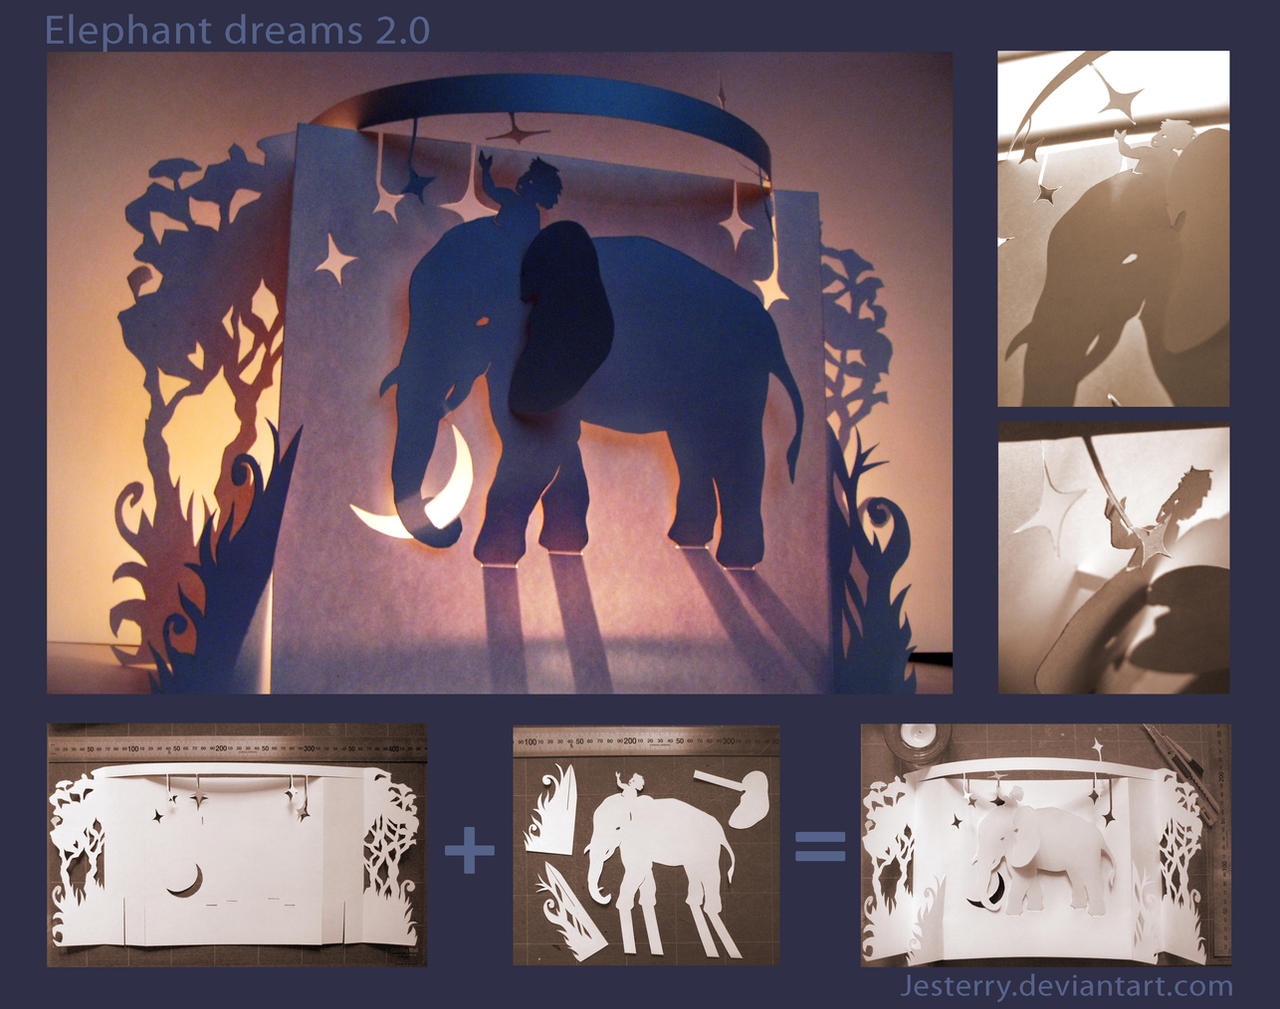 Elephant Dreams 2.0 by jesterry